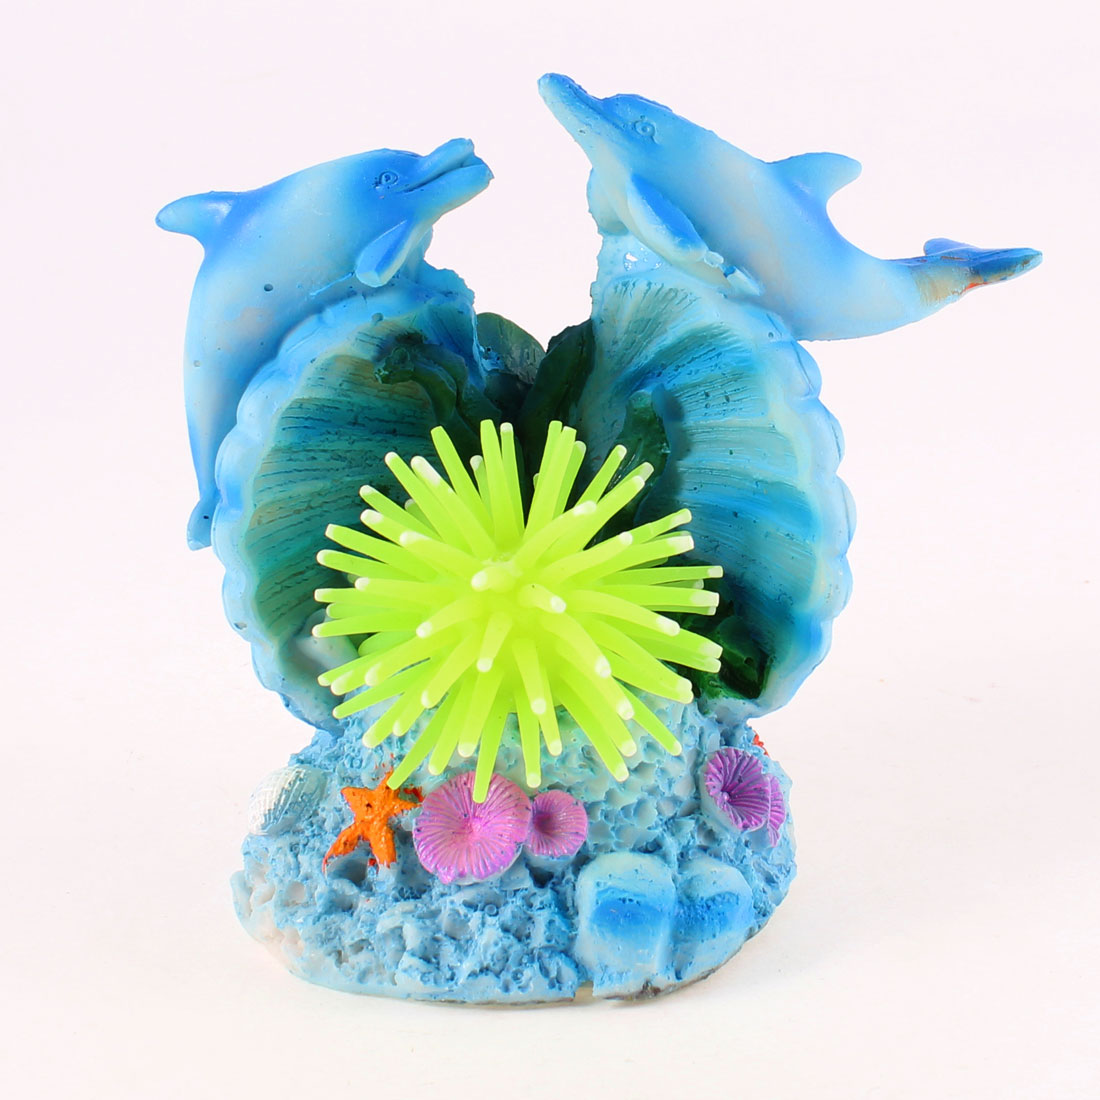 2 Pcs Blue Swing Tail Dolphin Yellow Silicone Sea Anemone Decor for Aquarium